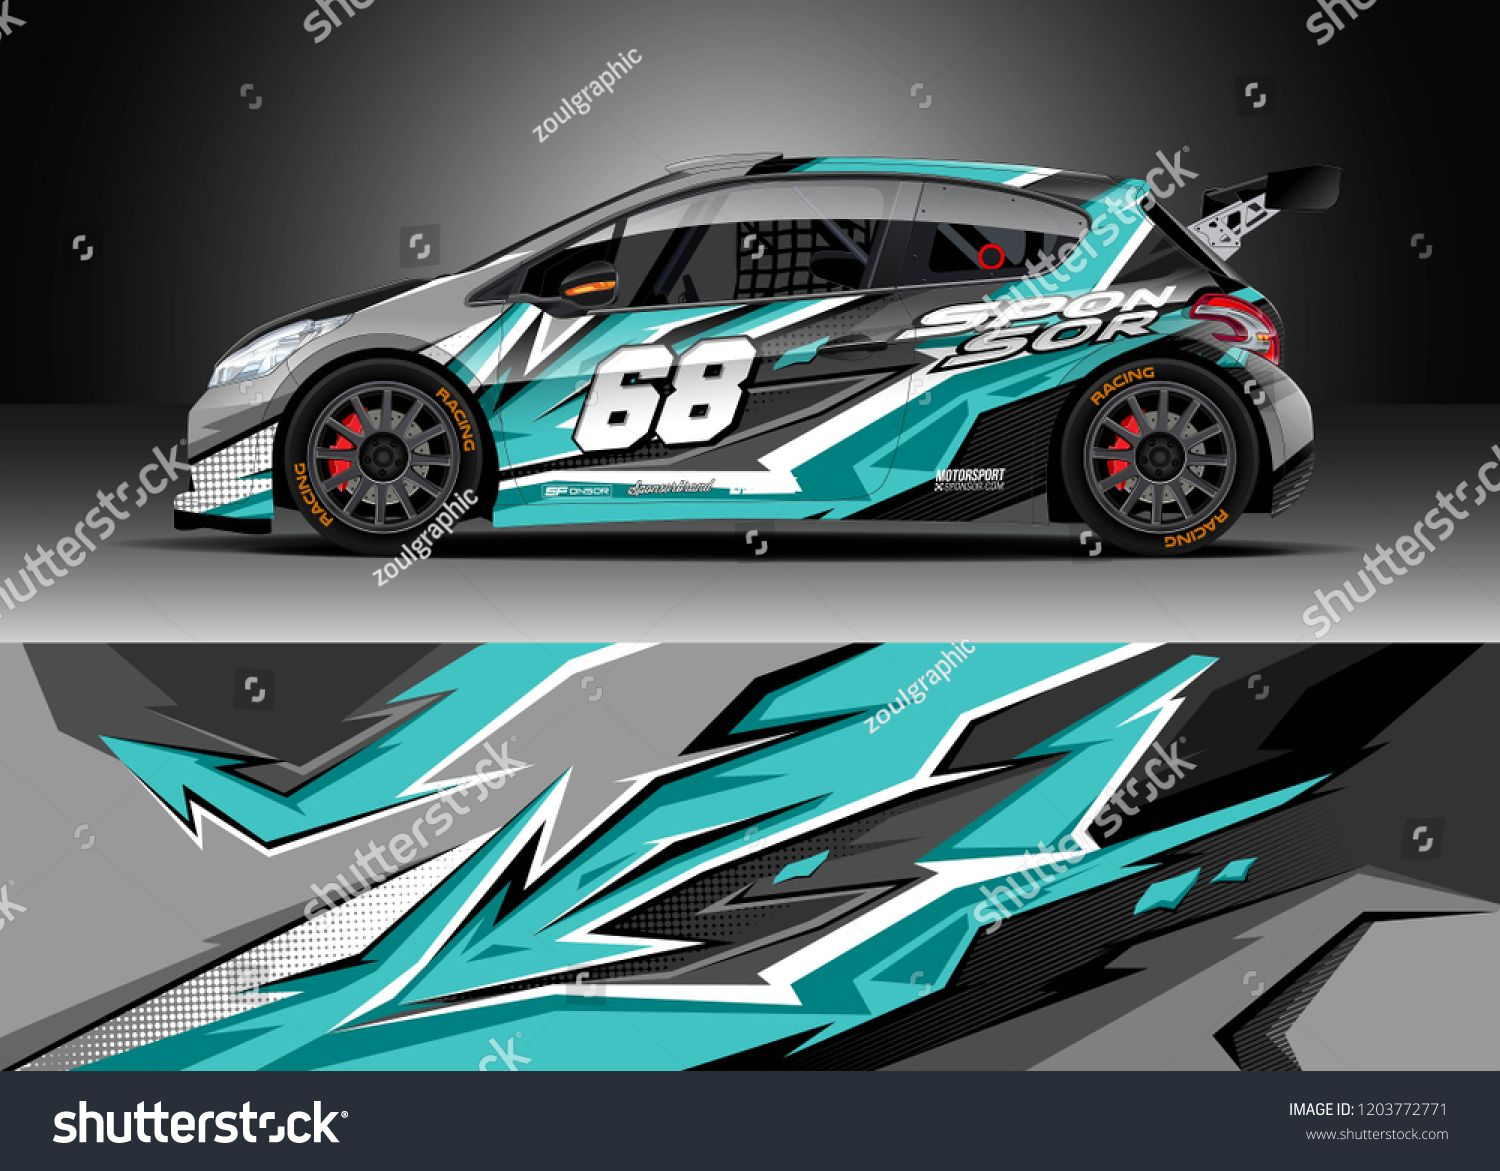 Racing Car Wrap Design Vector Graphic Abstract Stripe Racing Background Kit Designs For Wrap Vehicle Race Car Rally Adve Car Wrap Design Car Wrap Race Cars